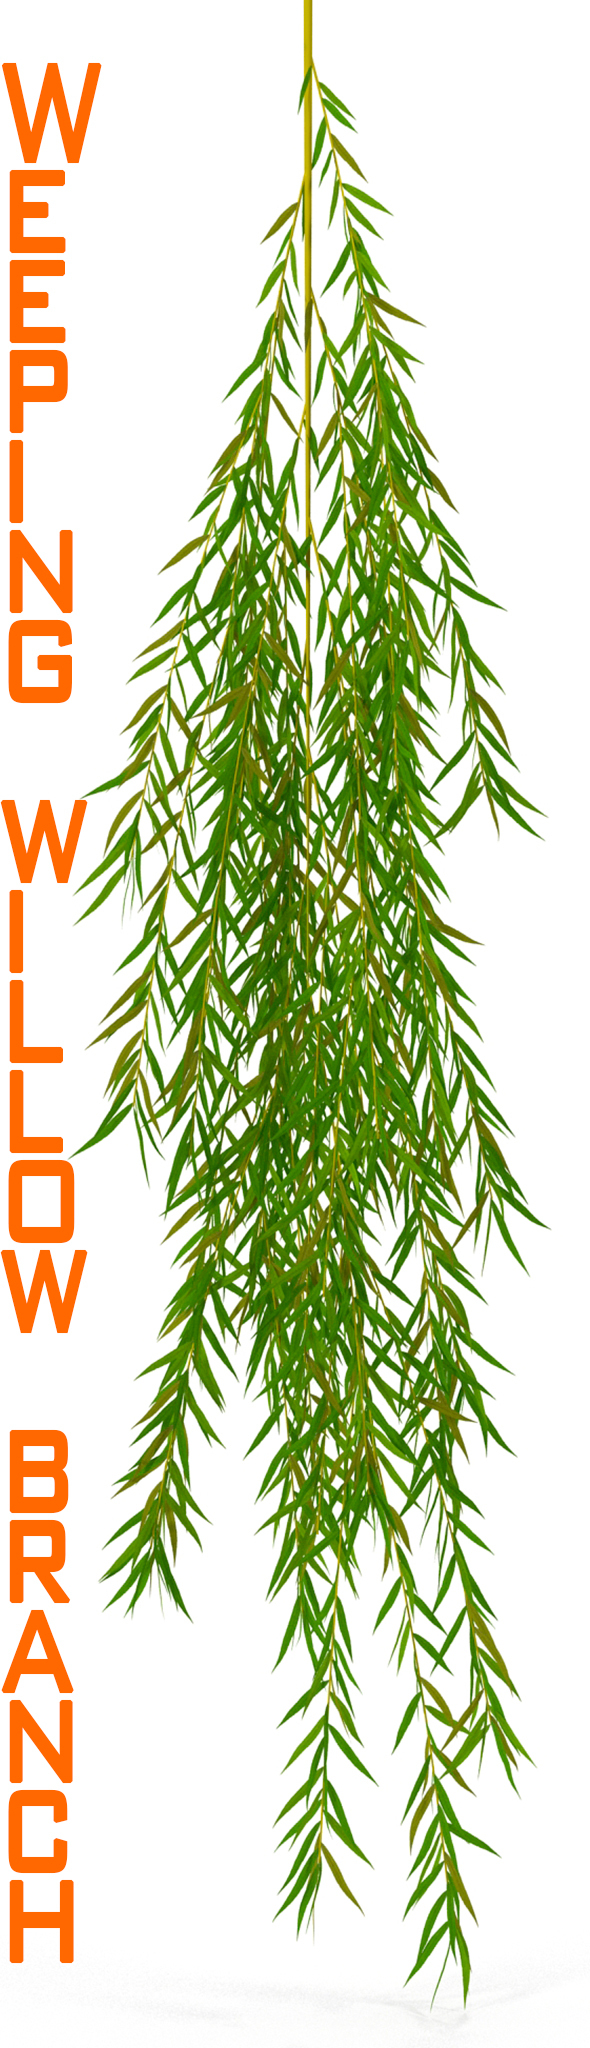 Weeping willow branch - 3DOcean Item for Sale